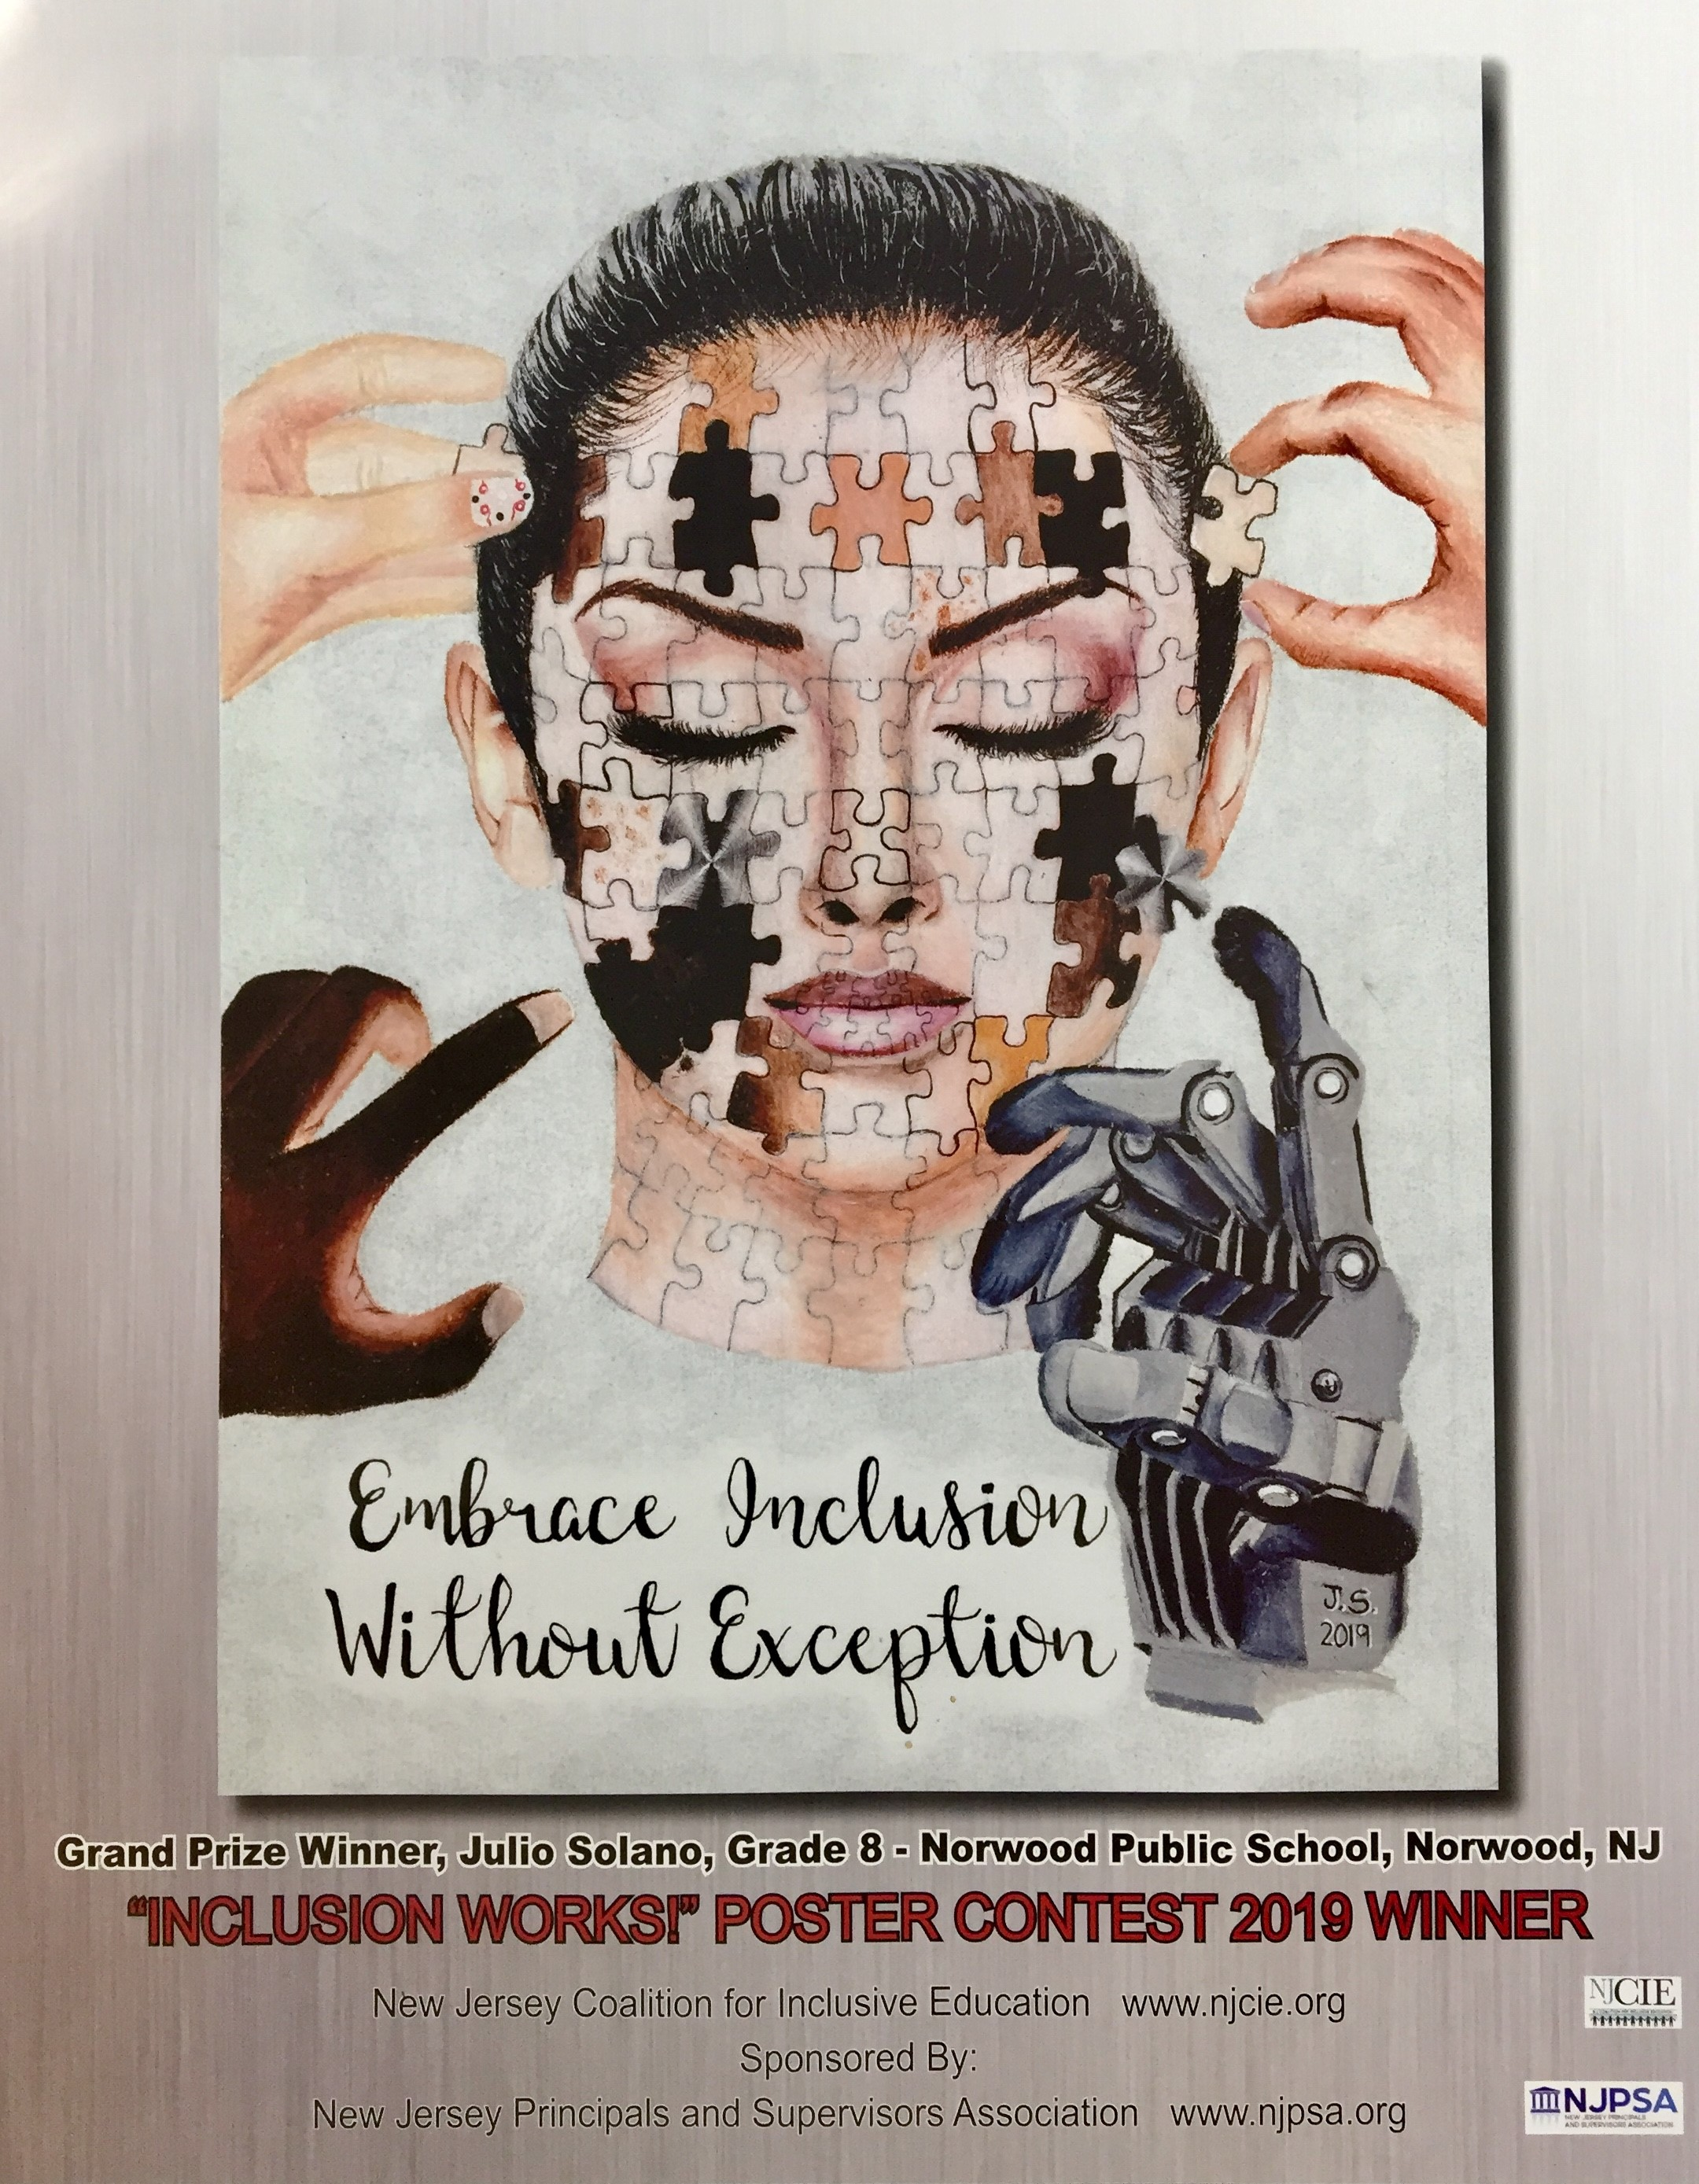 Annual Poster Contest & NJCIE Honors! - At the 2019 Summer Inclusion Conference, NJCIE will announce 2019's Annual Poster Contest Winner along with the educators winning the NJCIE Honors in 2019. Don't miss it!